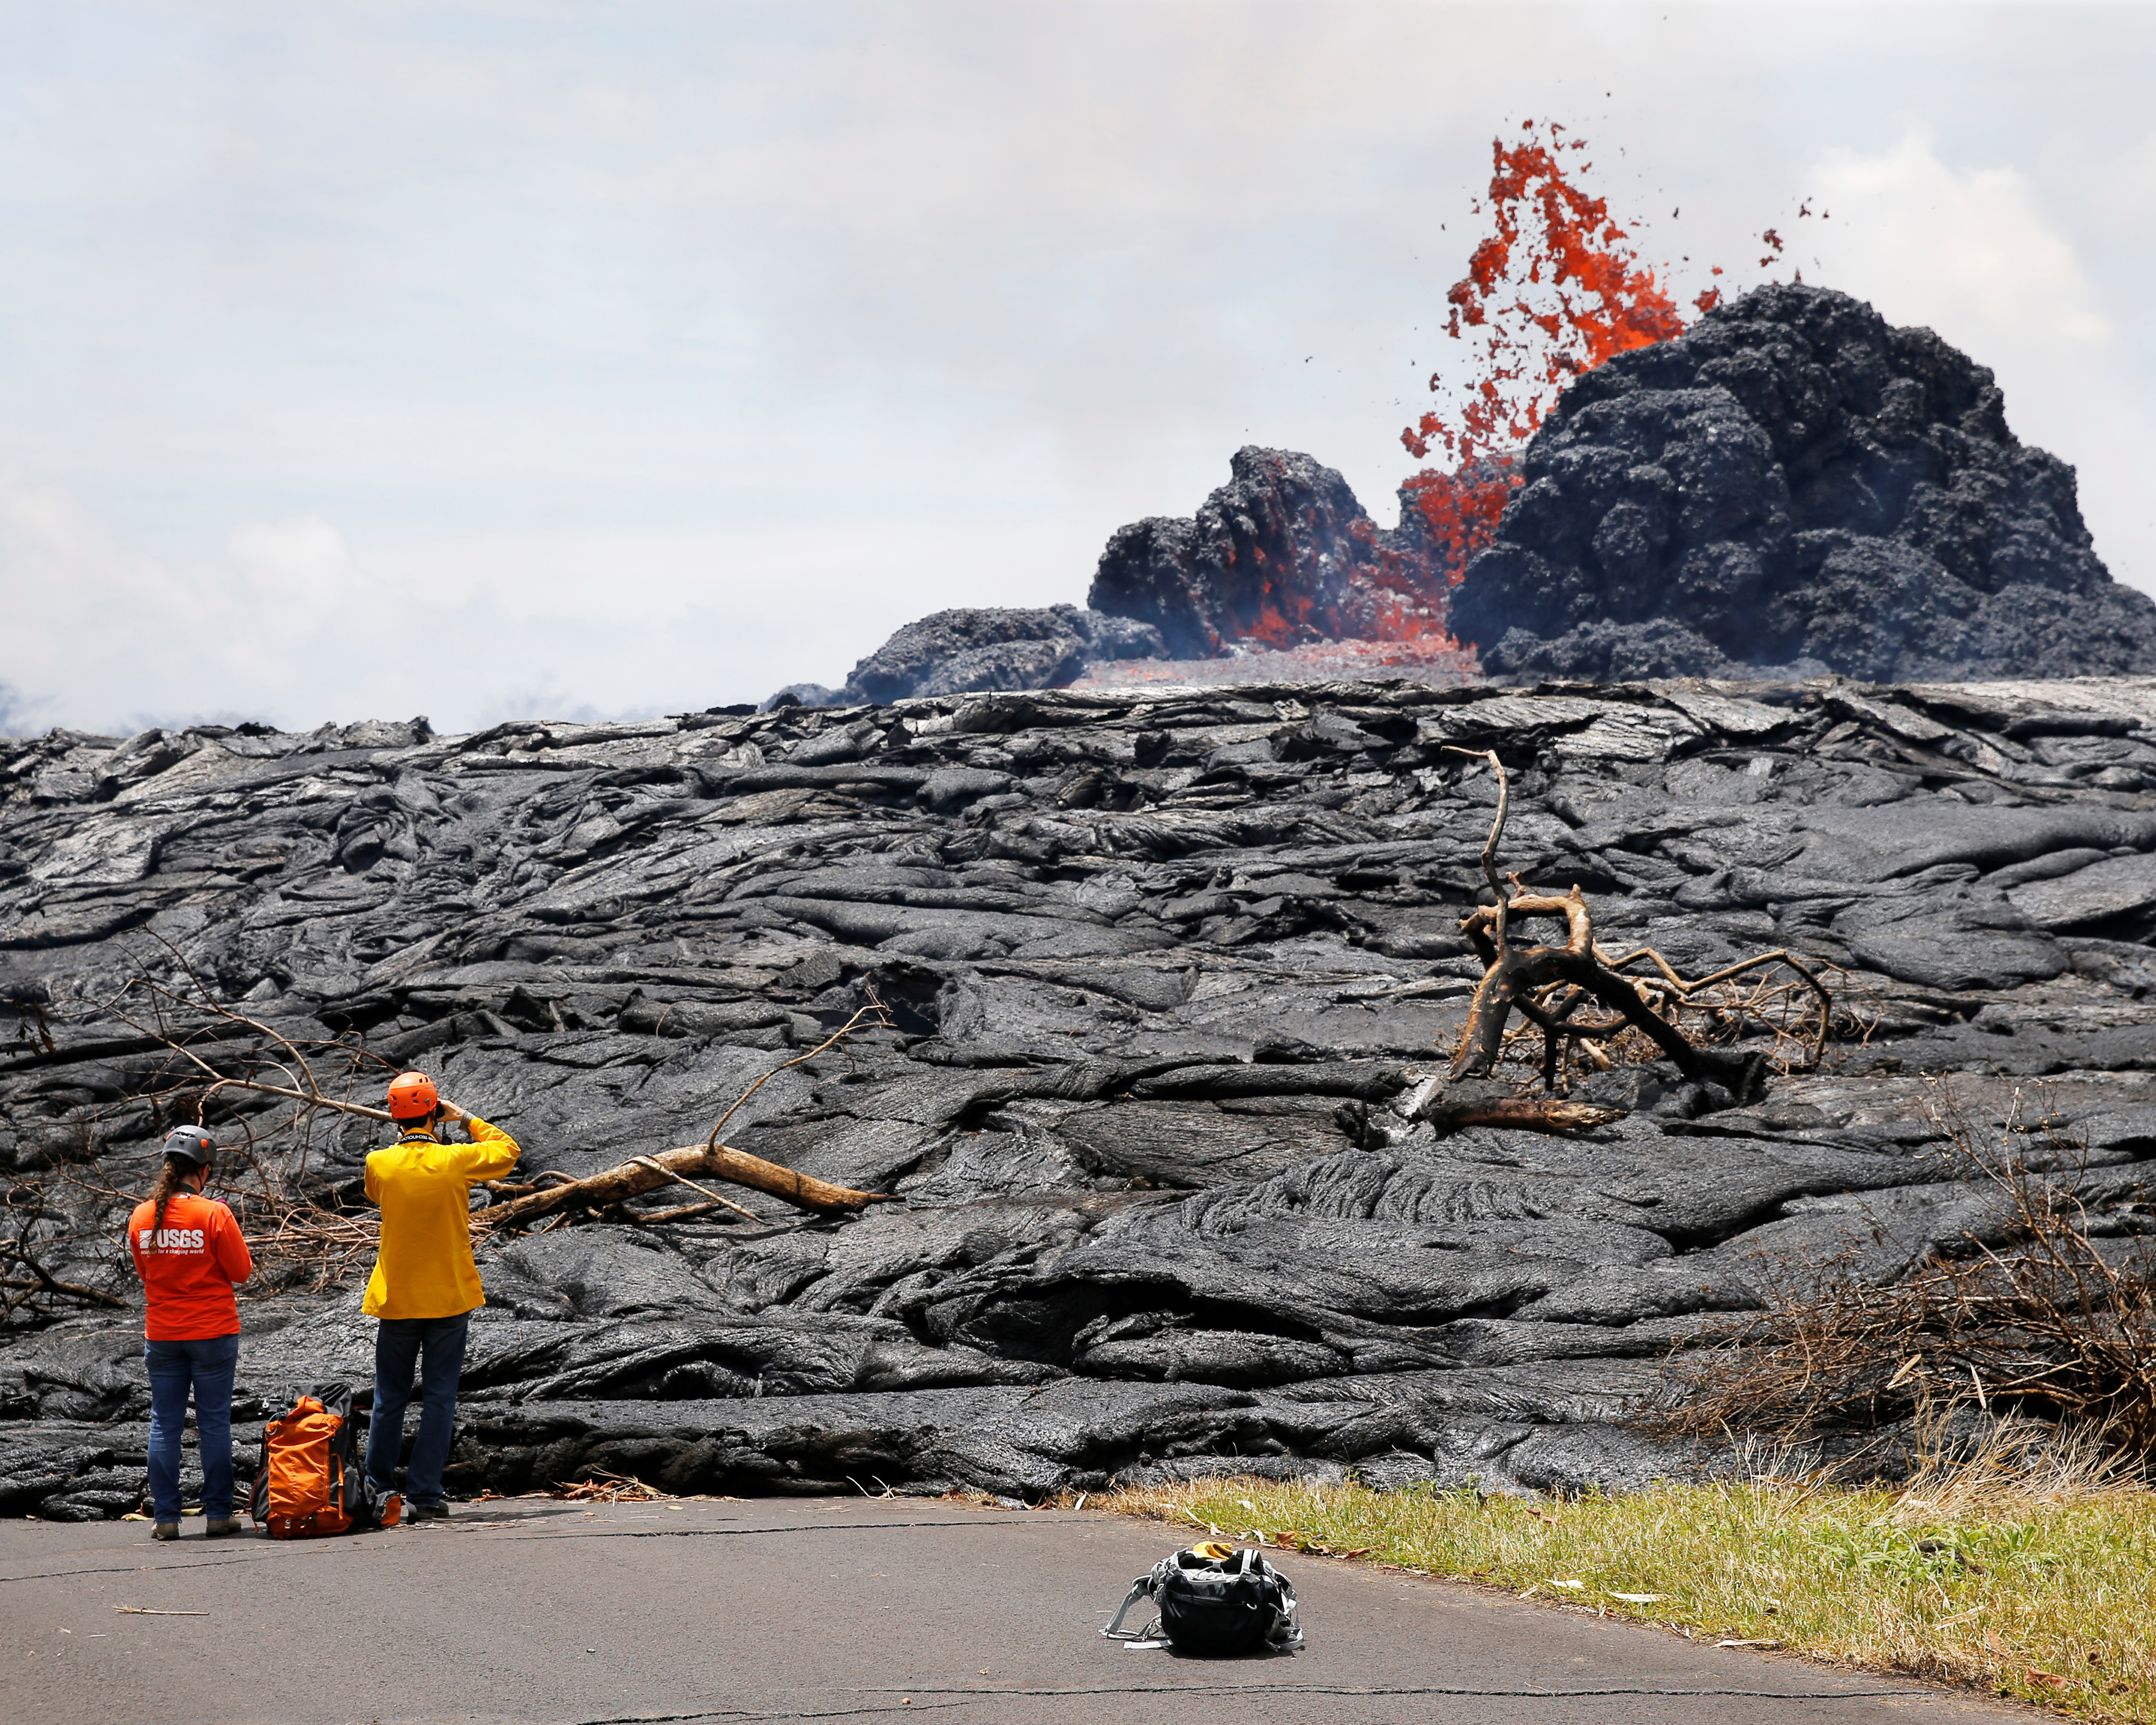 Sarah Conway, left, and Matt Patrick, both from USGS Hawaiian Volcano, watch lava erupting from a fissure in the Leilani Estates near Pahoa, Hawaii, May 24, 2018.